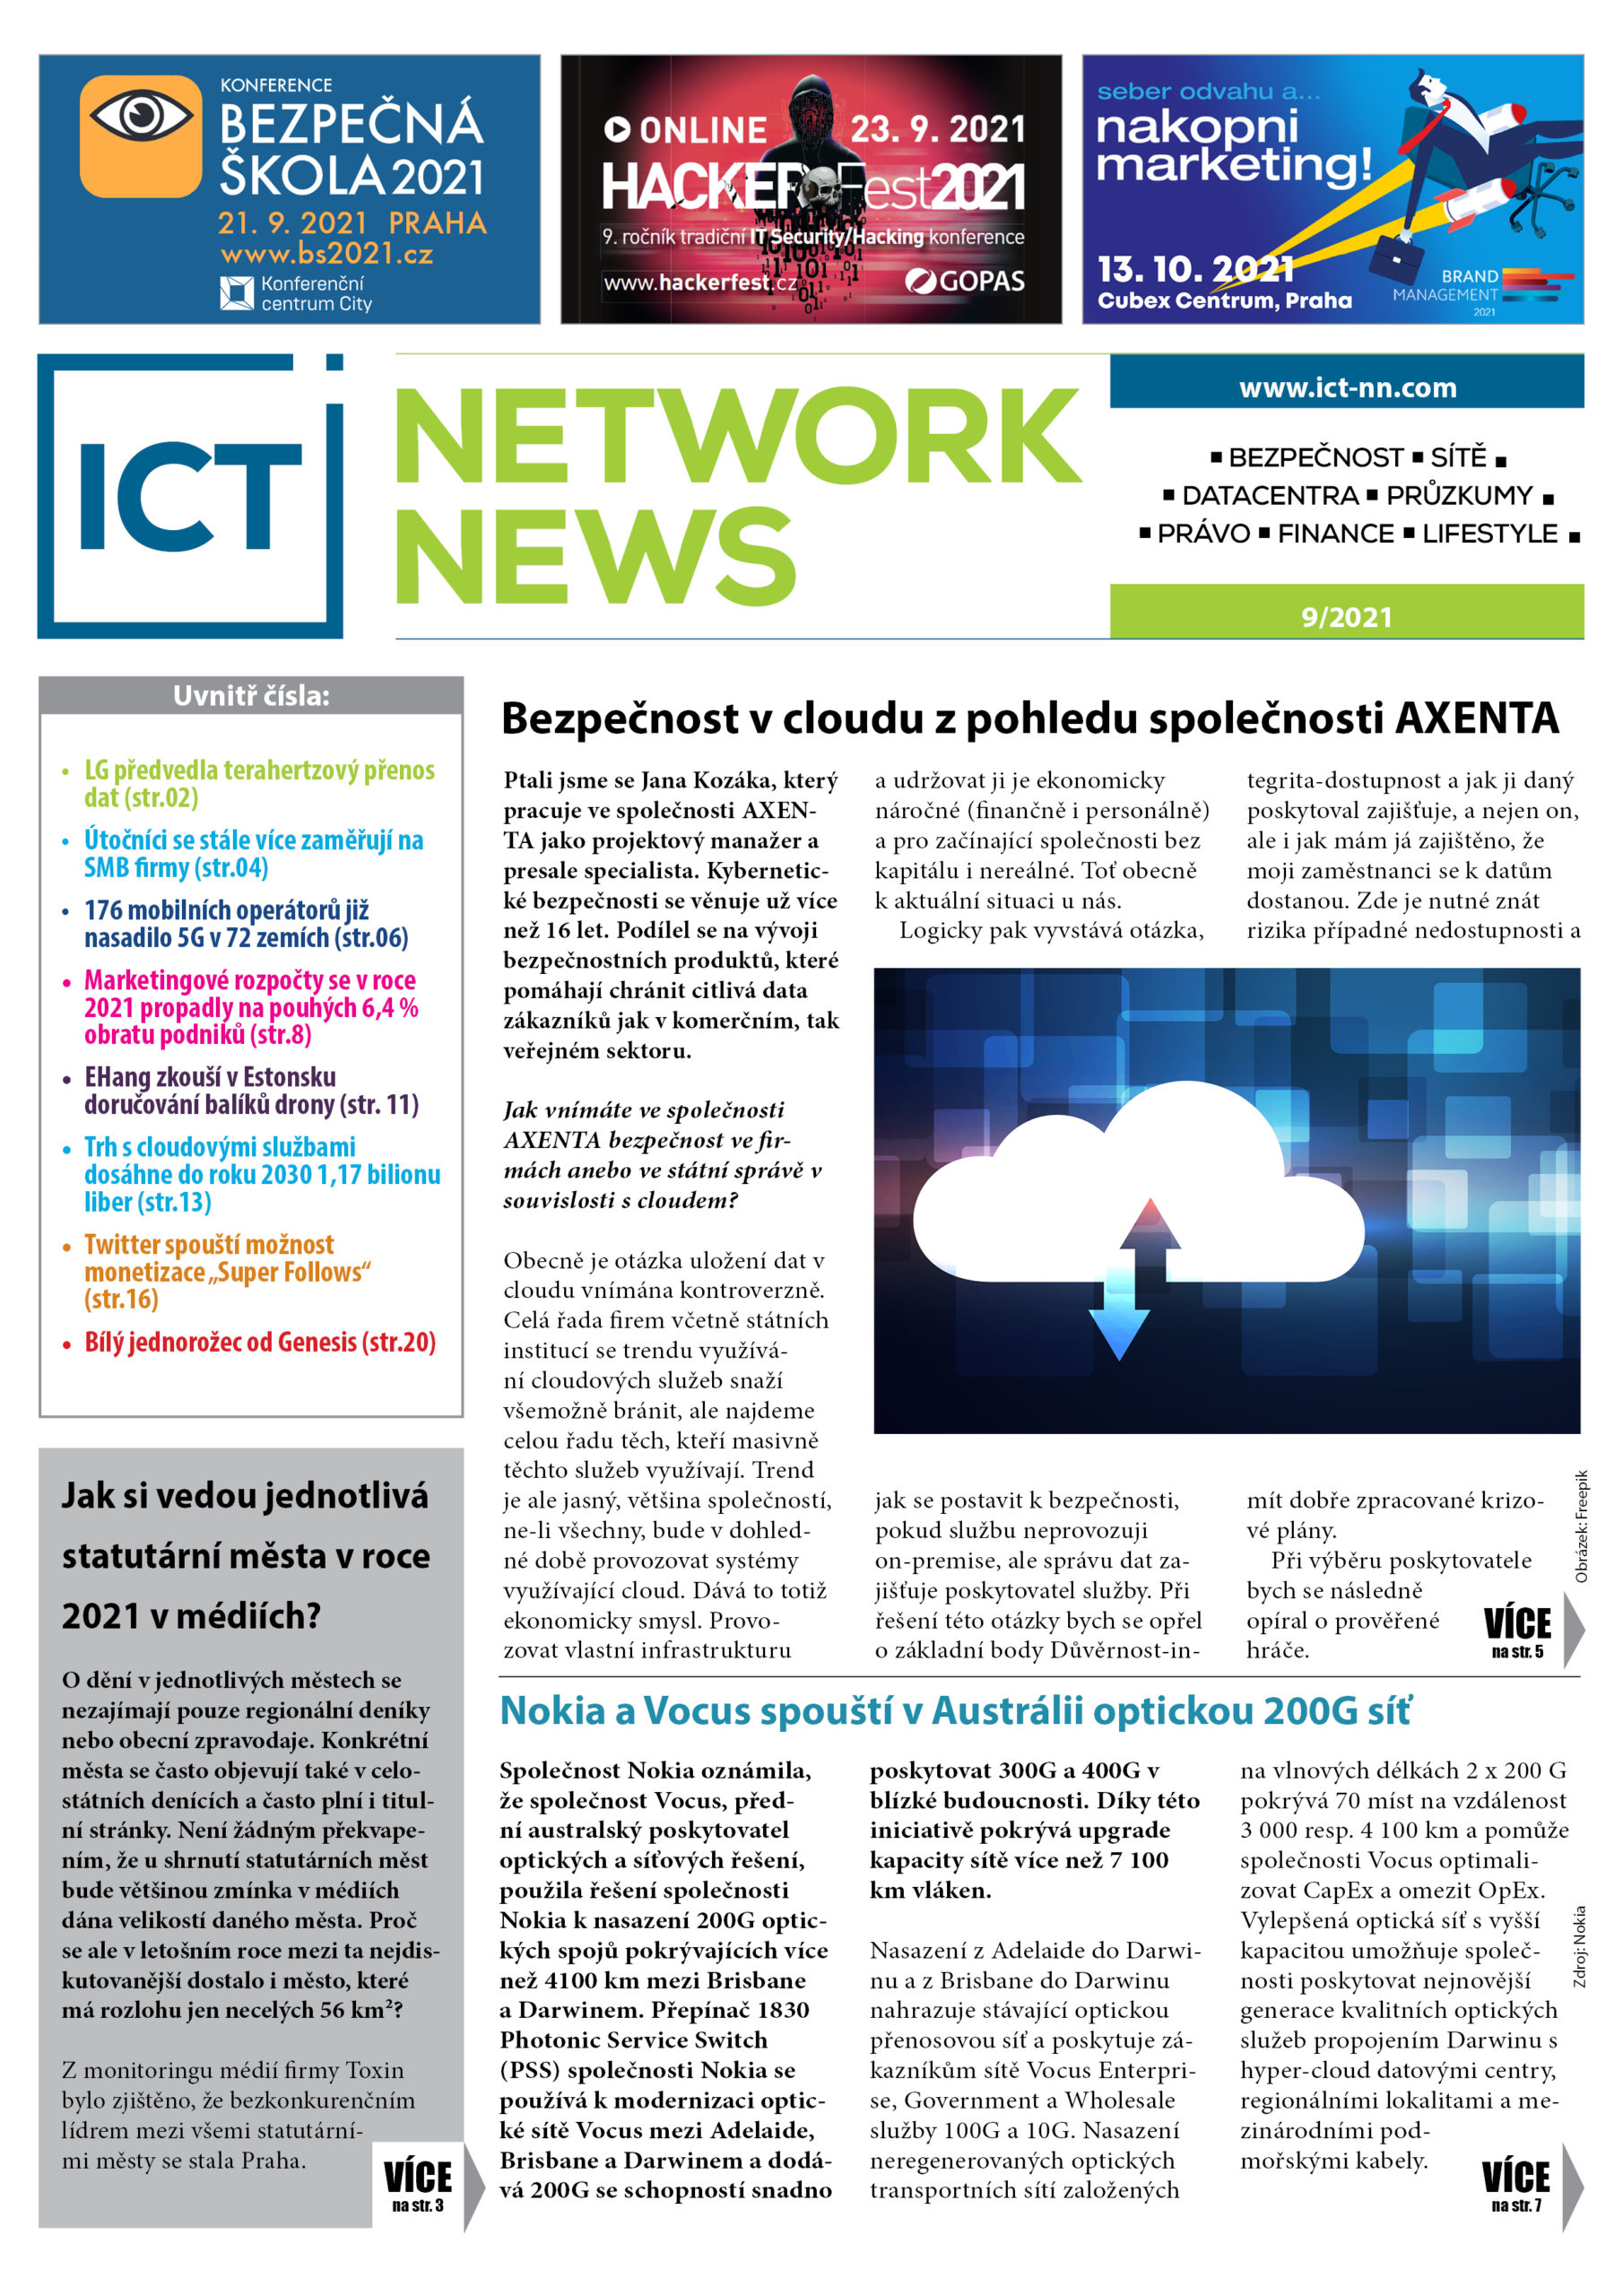 ICT NETWORK NEWS 9-2021 cover